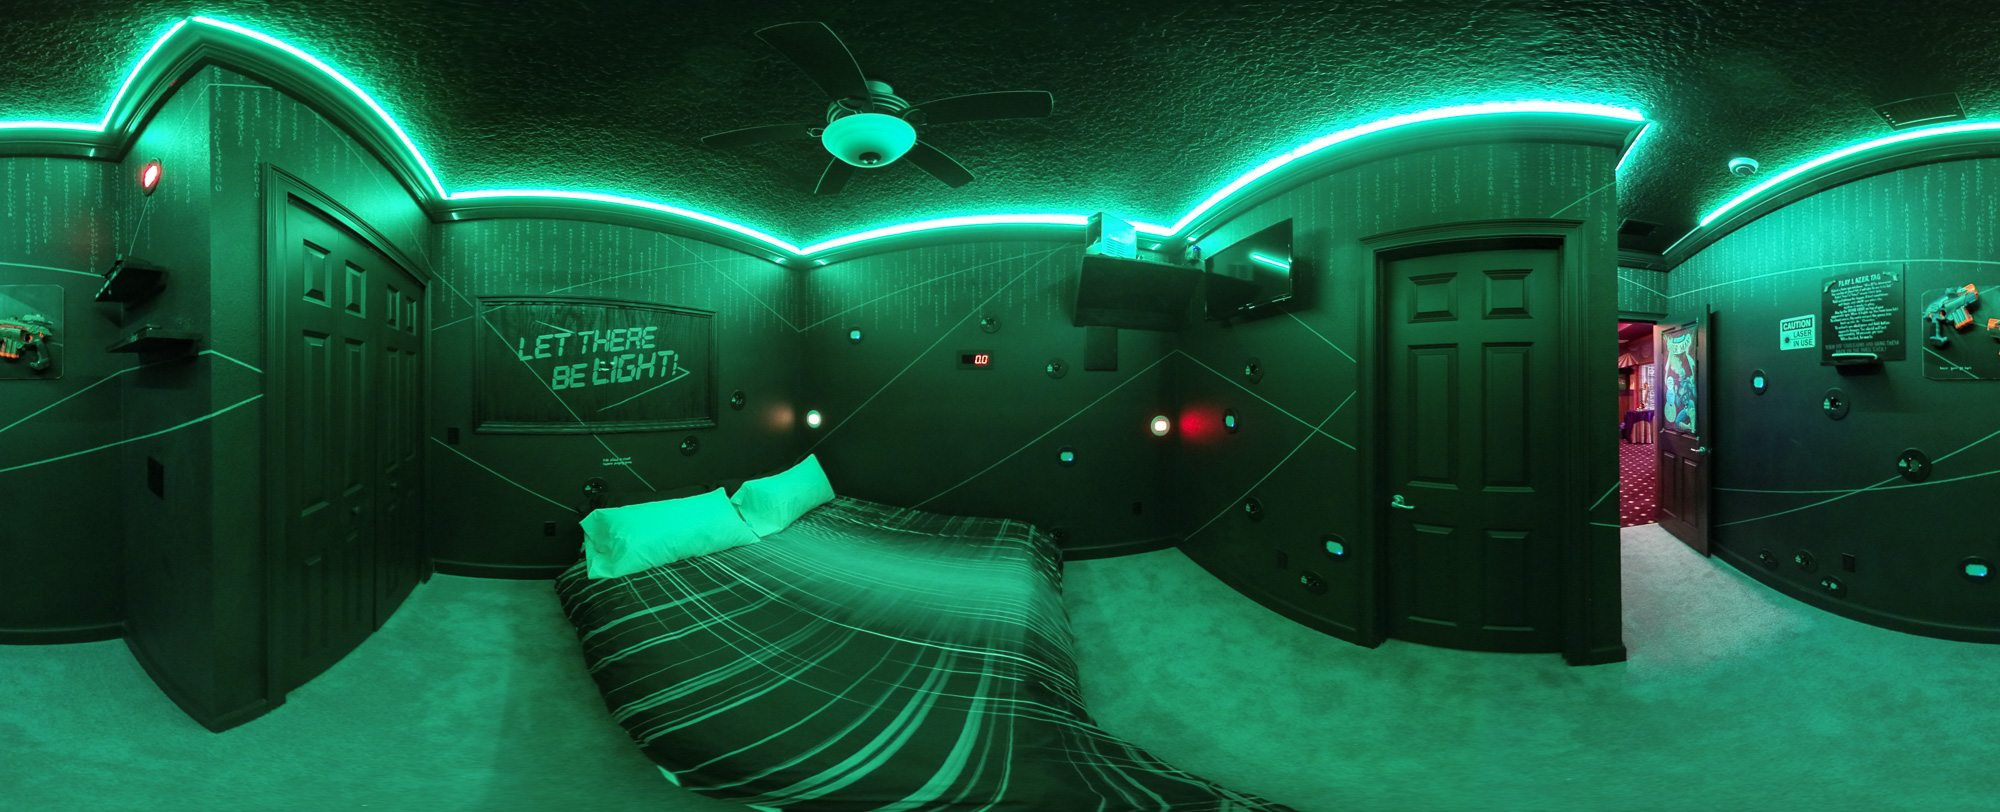 Vacation rental home for family reunions.... with laser tag - The Milky Way Galaxy Room at Sweet Escape House in Clermont FL